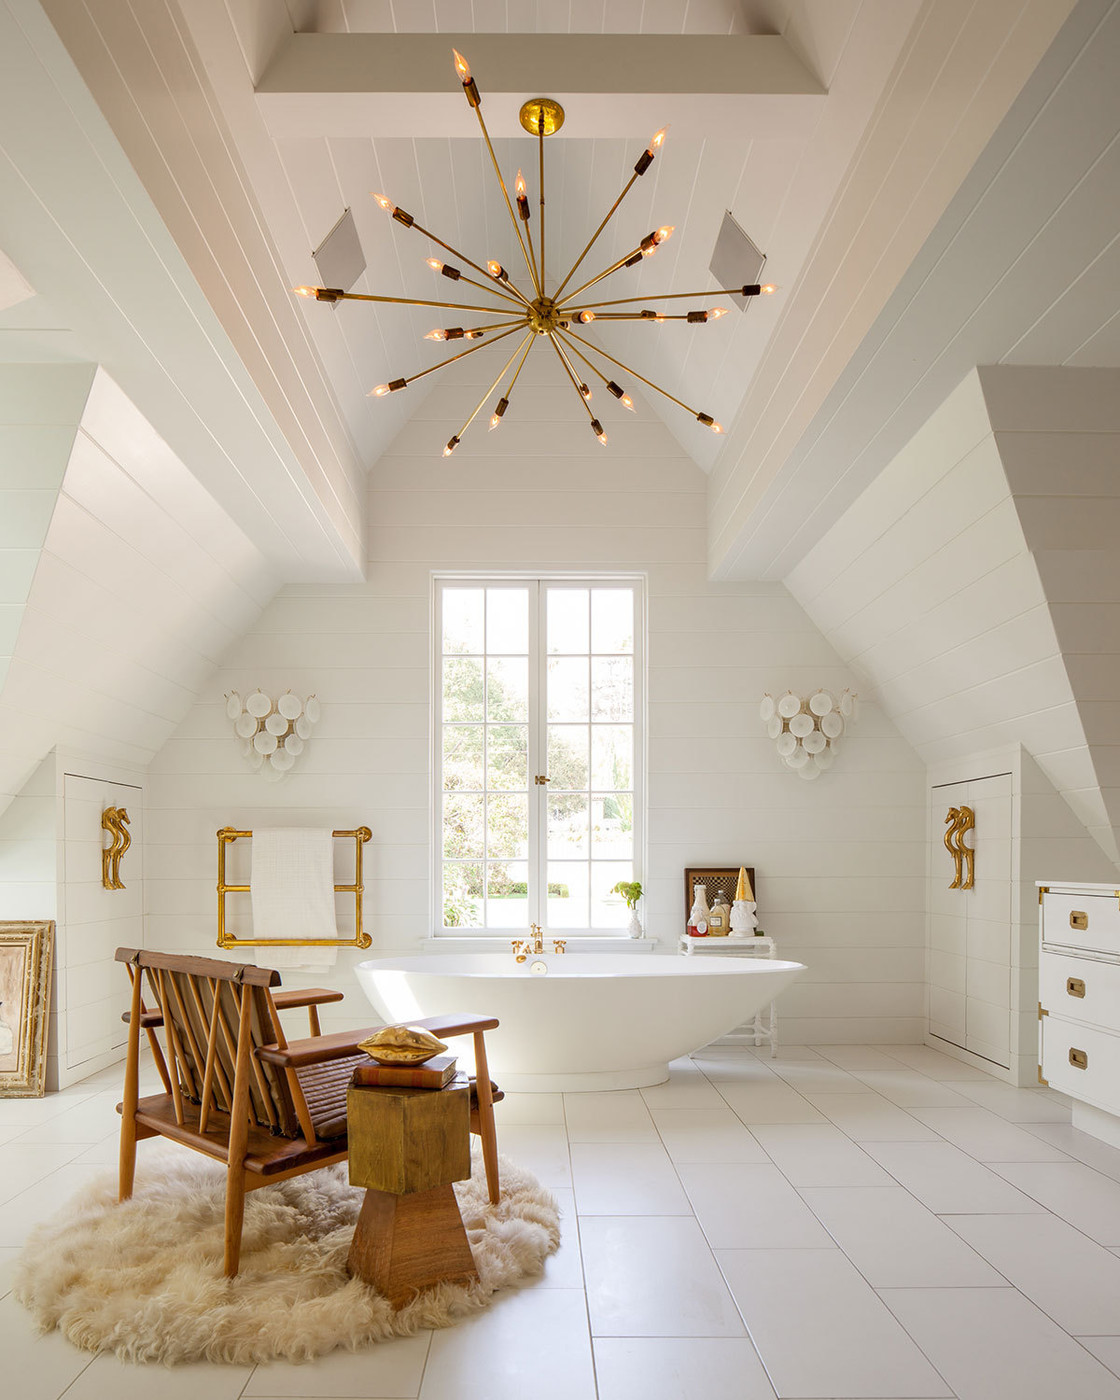 A touch of gold in these bathroom design ideas